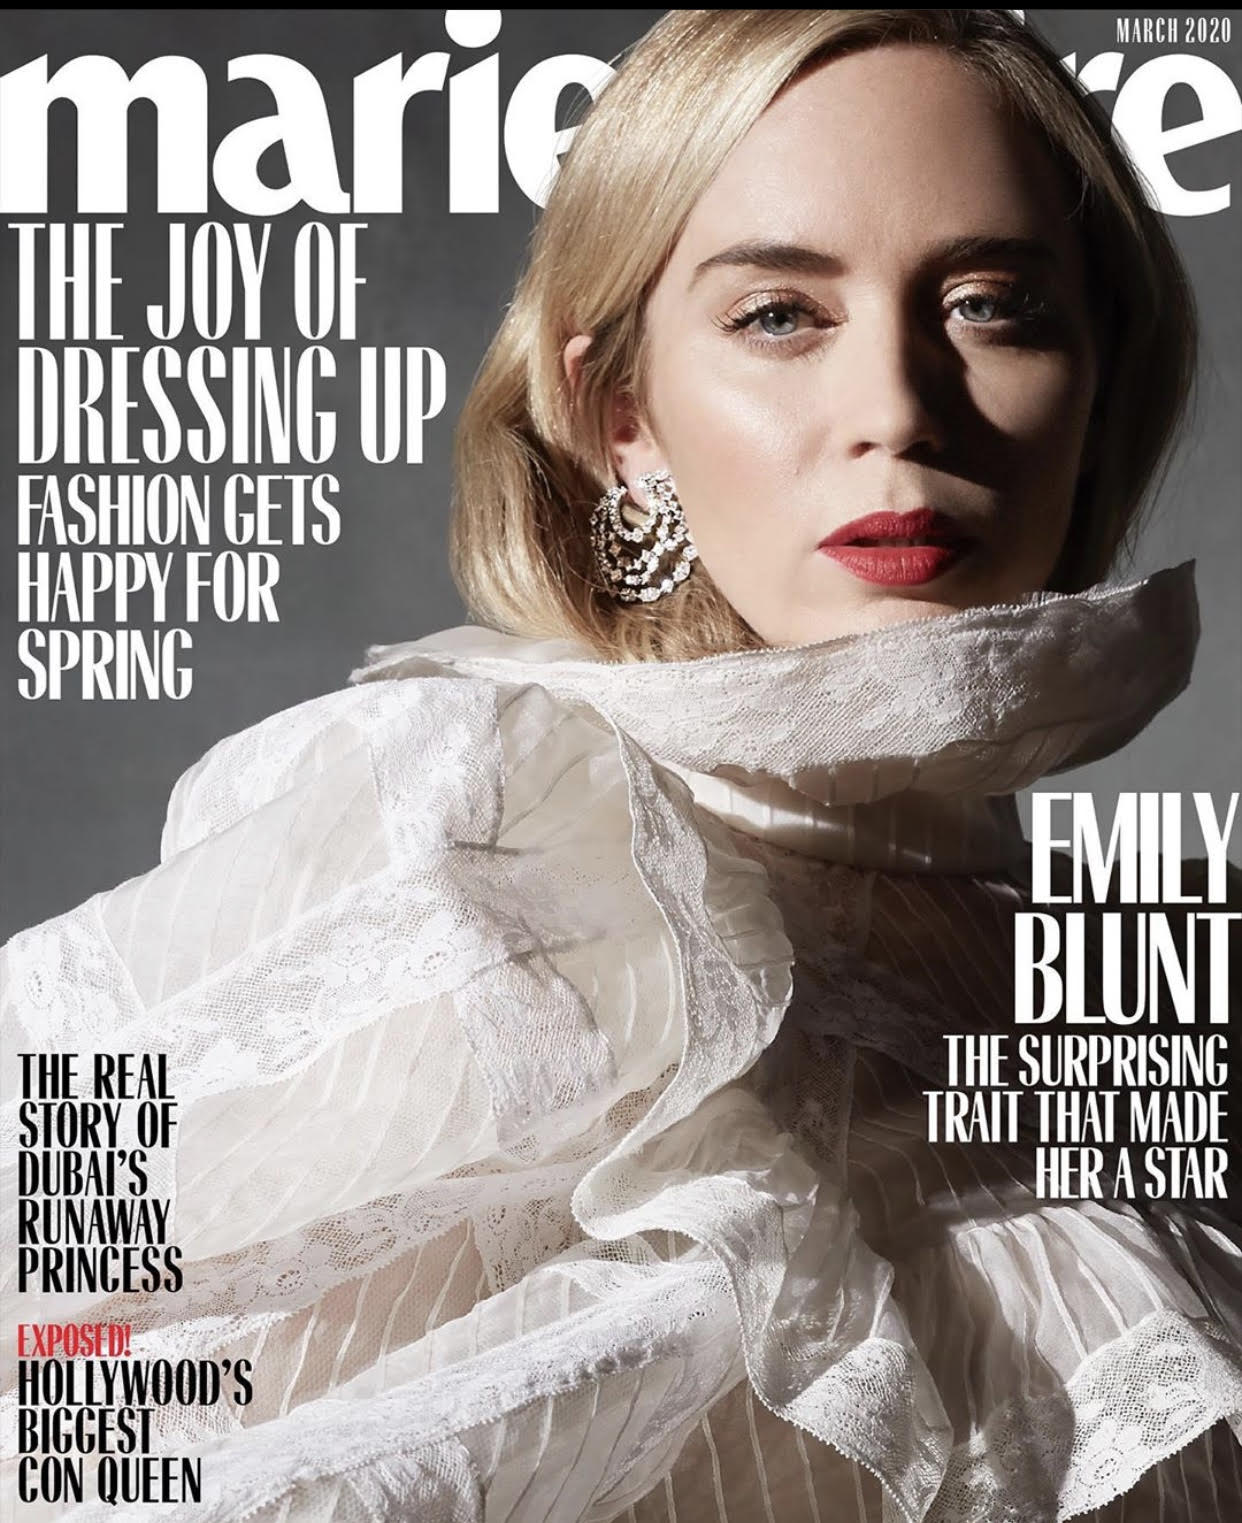 Emily Blunt x Marie Claire – March Cover 2020